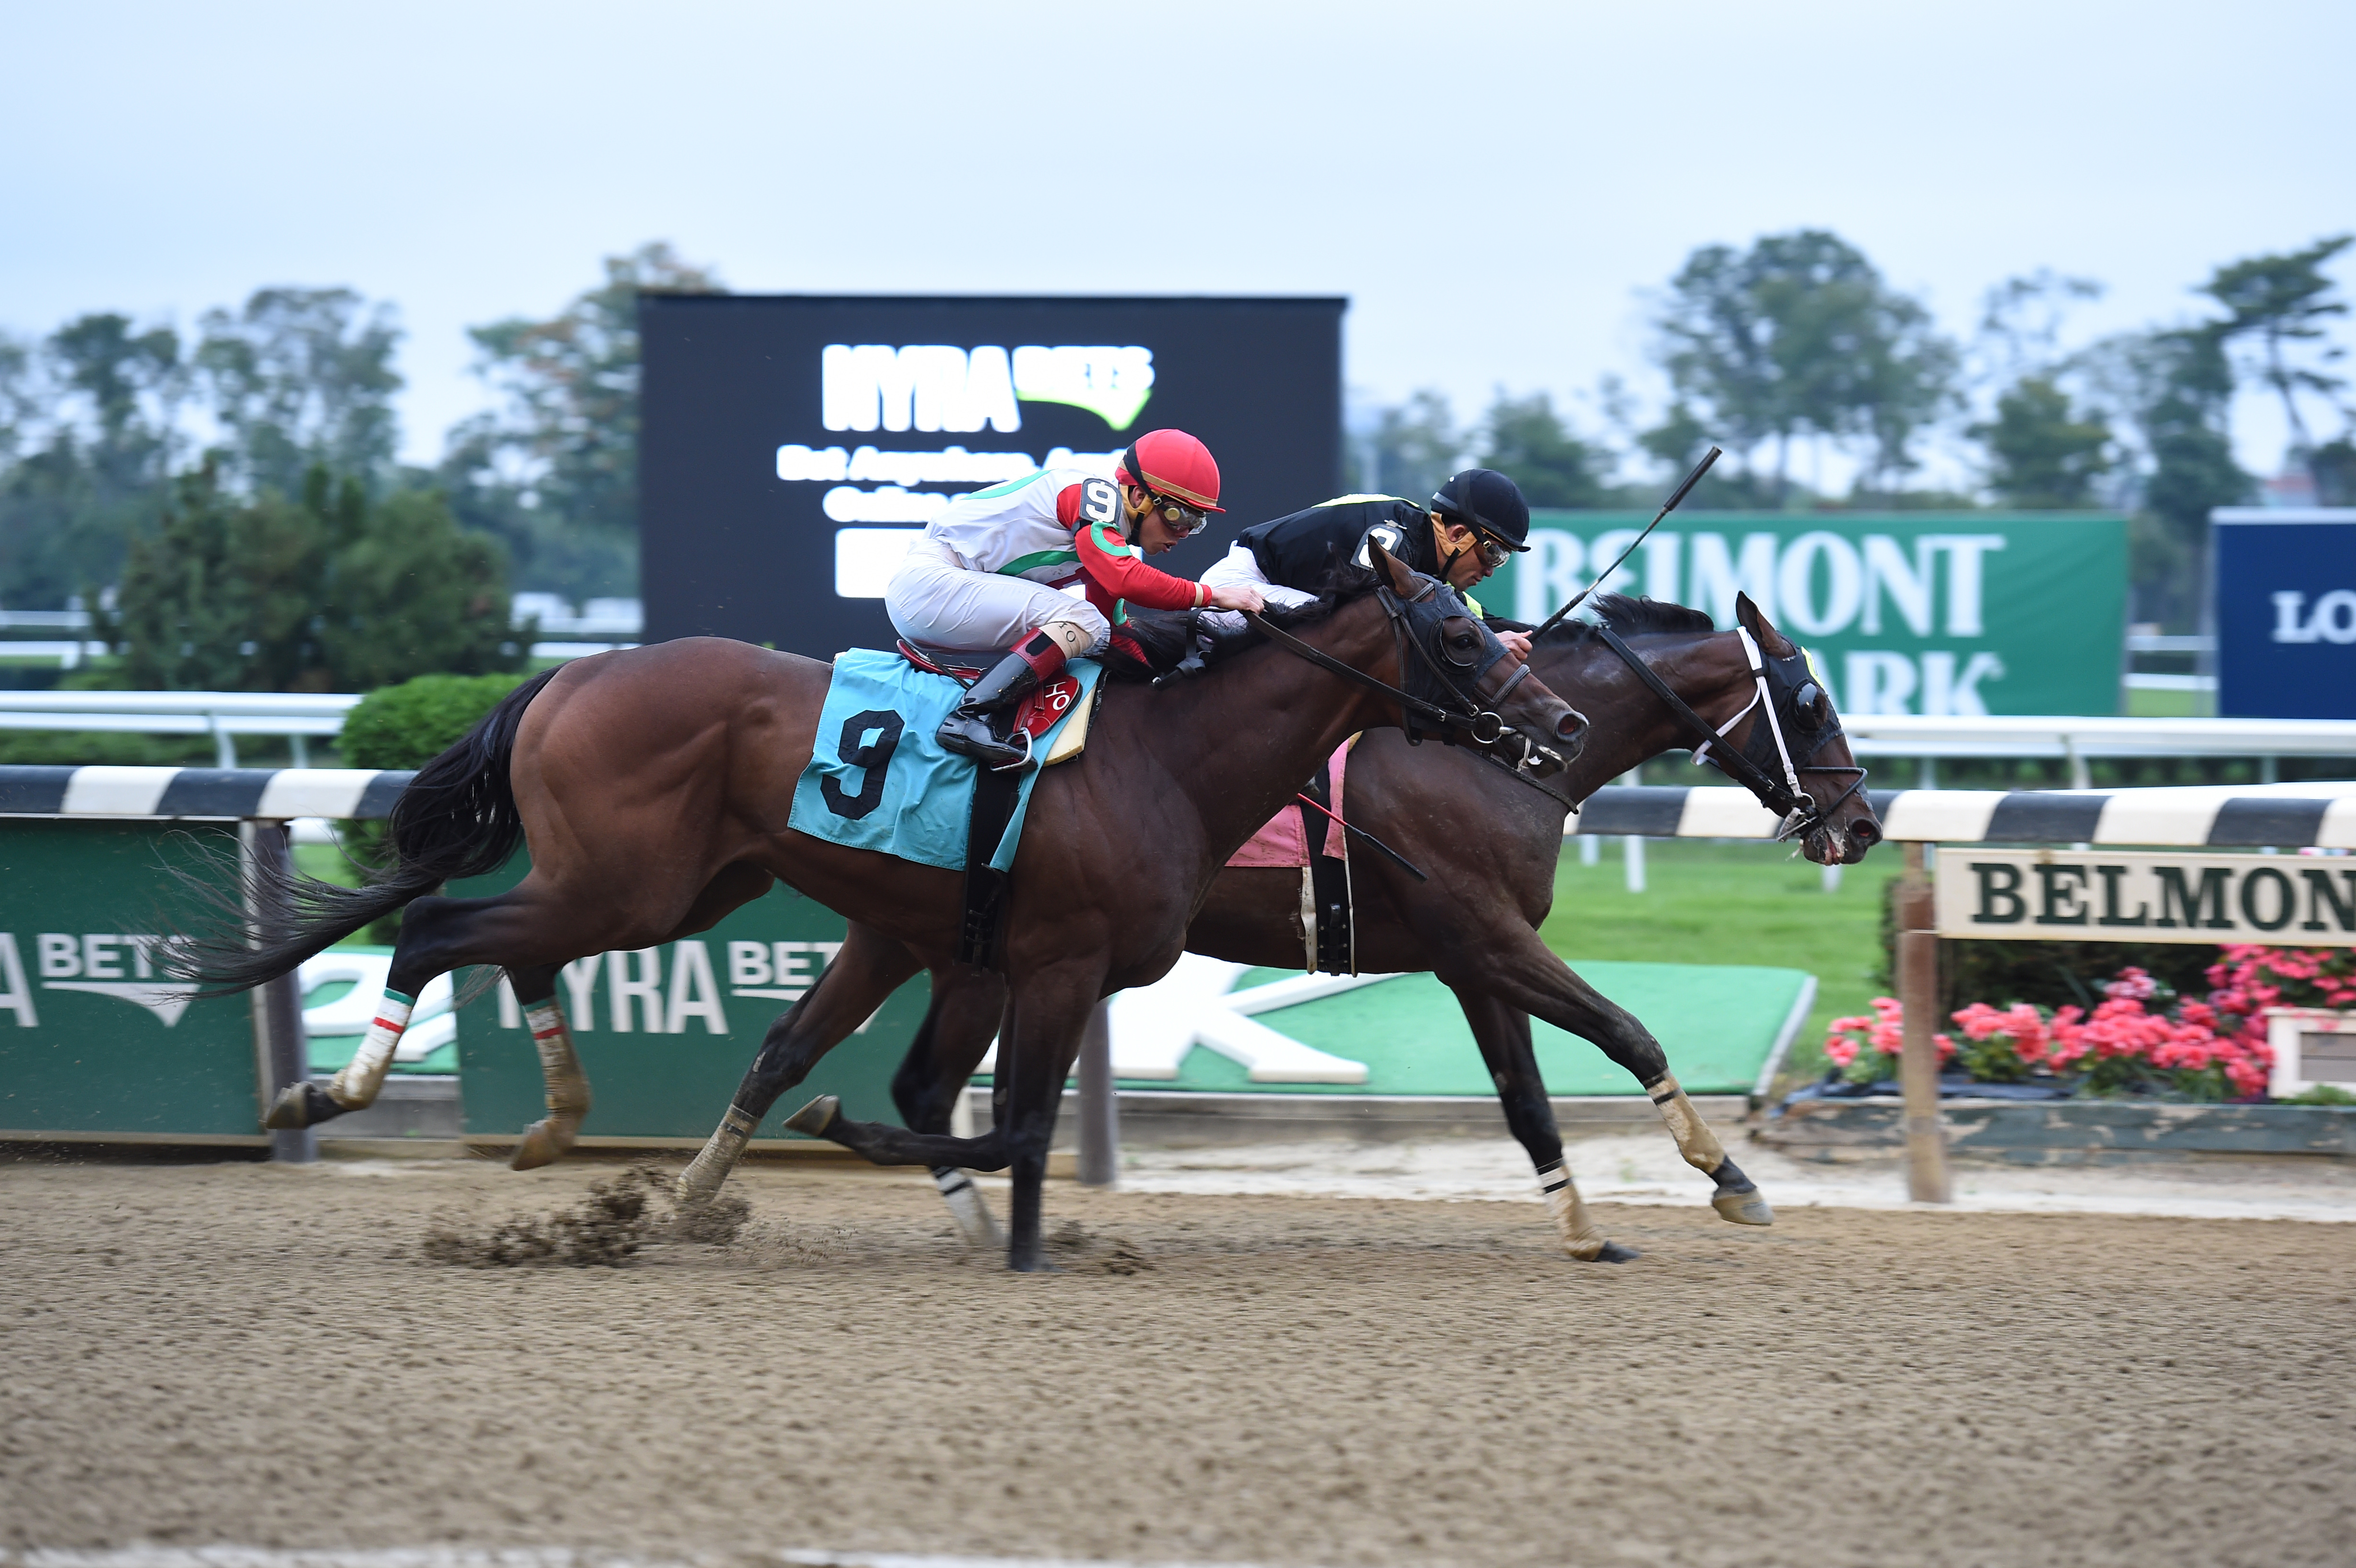 River Date, bred by Henry Carroll, went inside to score a win by a head over Do Share at Belmont October 2nd. Courtesy of Coglianese Photo.